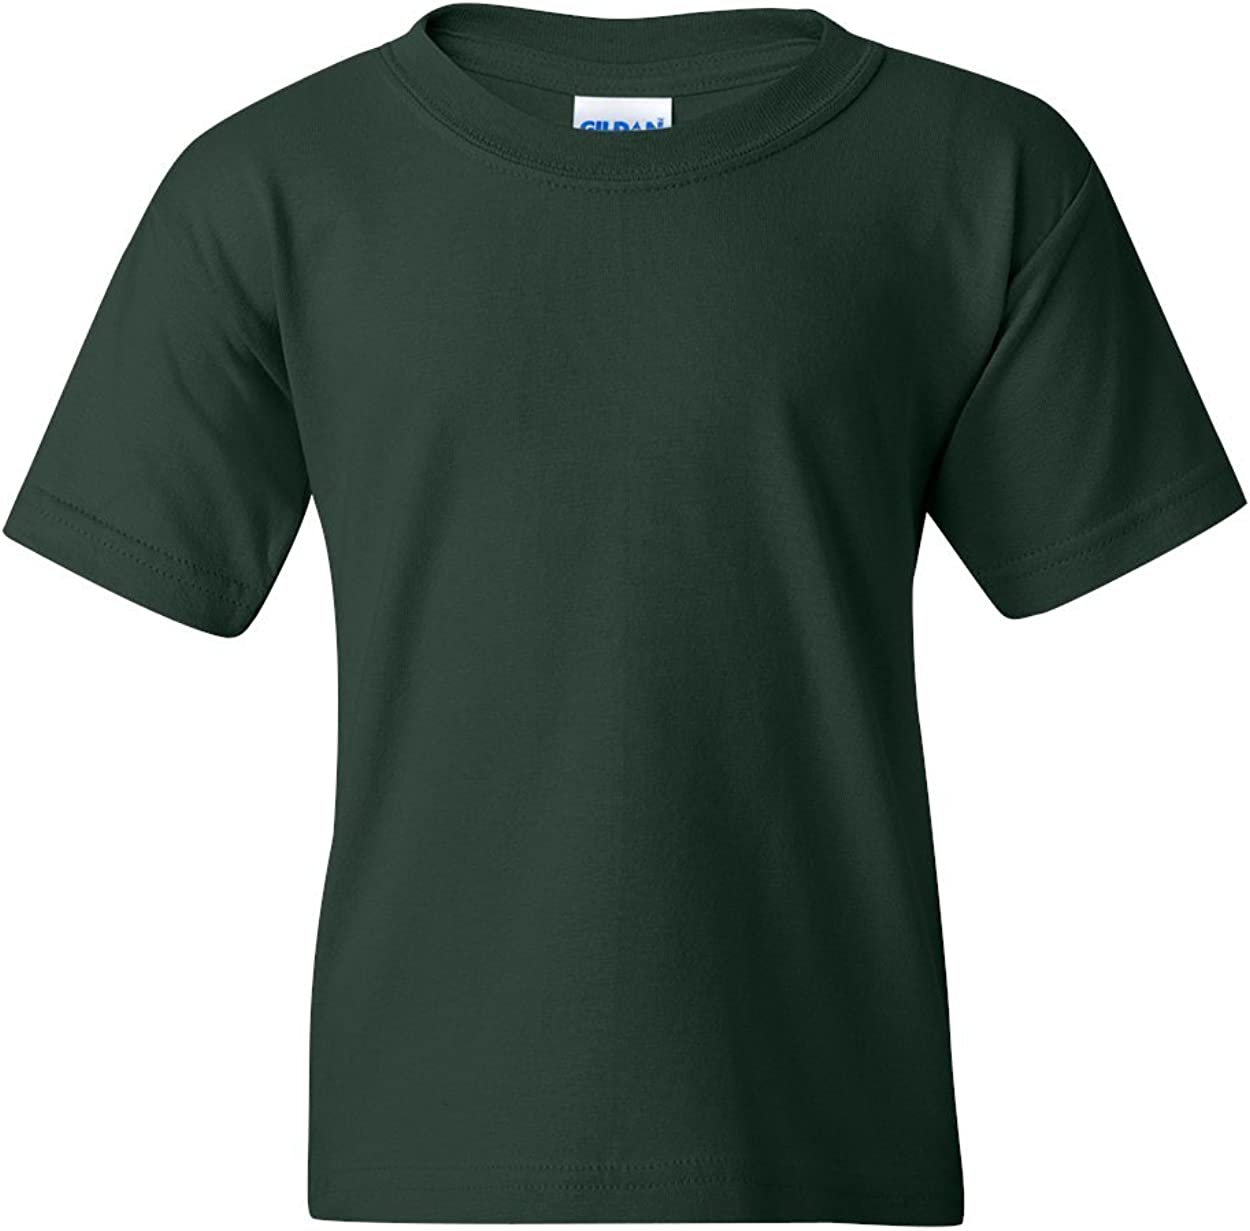 Heavy Cotton T-Shirt (G500B) Forest Green, M (Pack of 12)